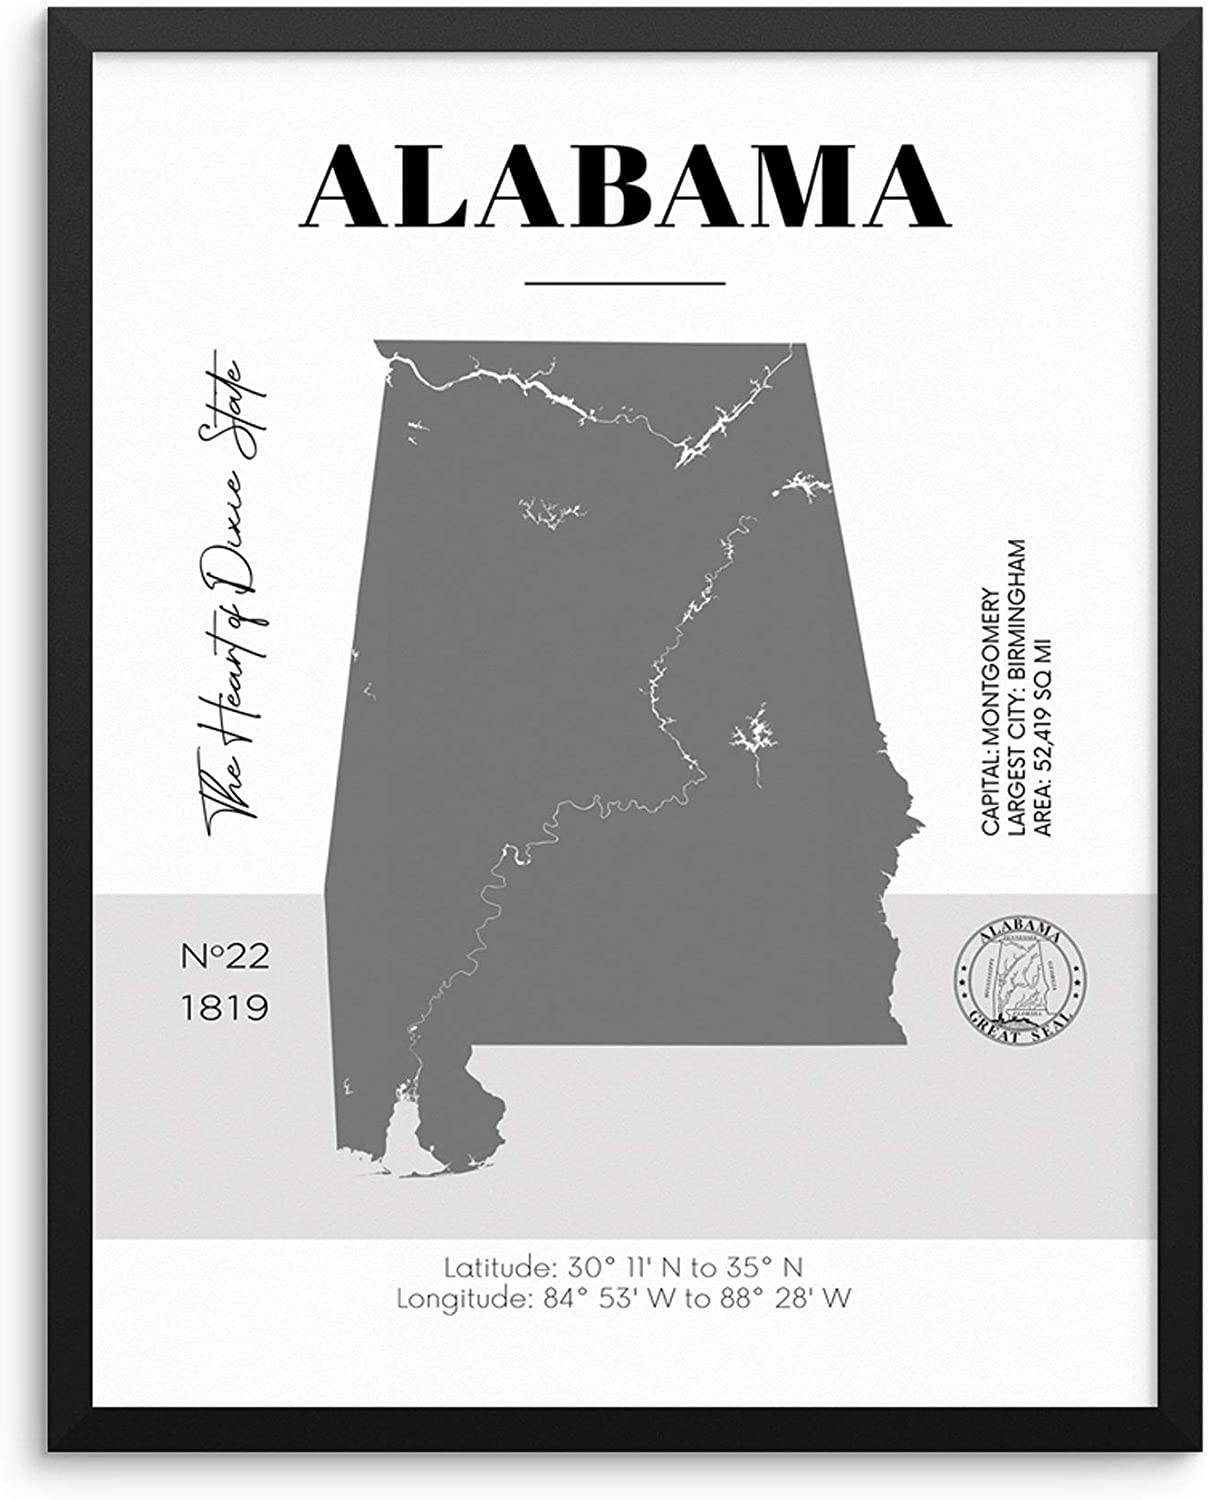 Alabama State Map Poster With Demographics Minimalist Home Decor Travel Art  Print 20x20 UNFRAMED Trendy Artwork for Bedroom Living Room Entryway ...